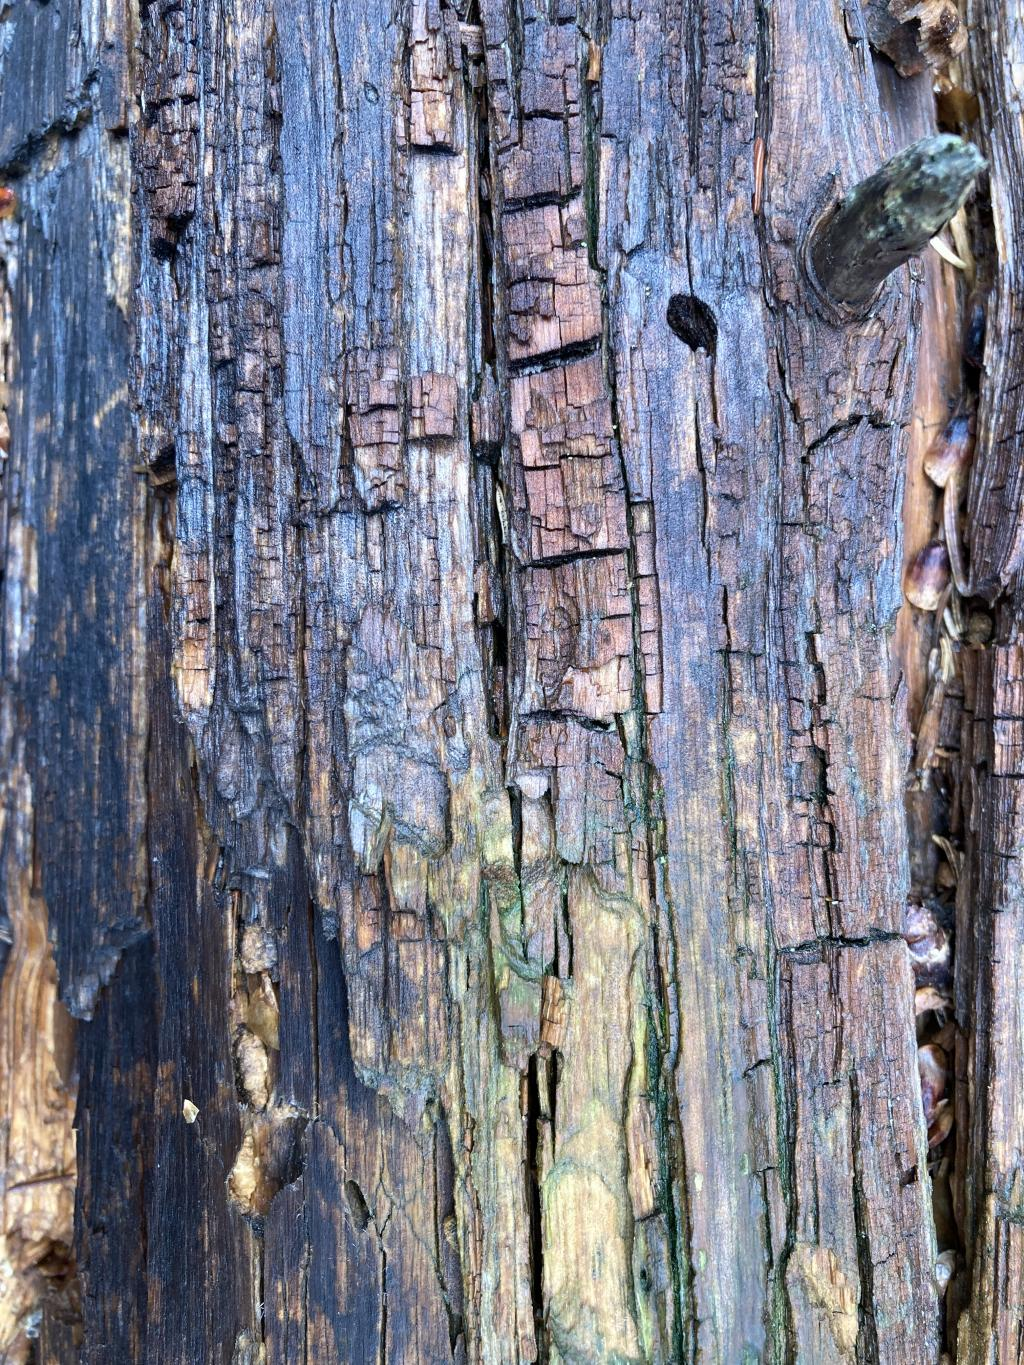 Section of a felled tree.